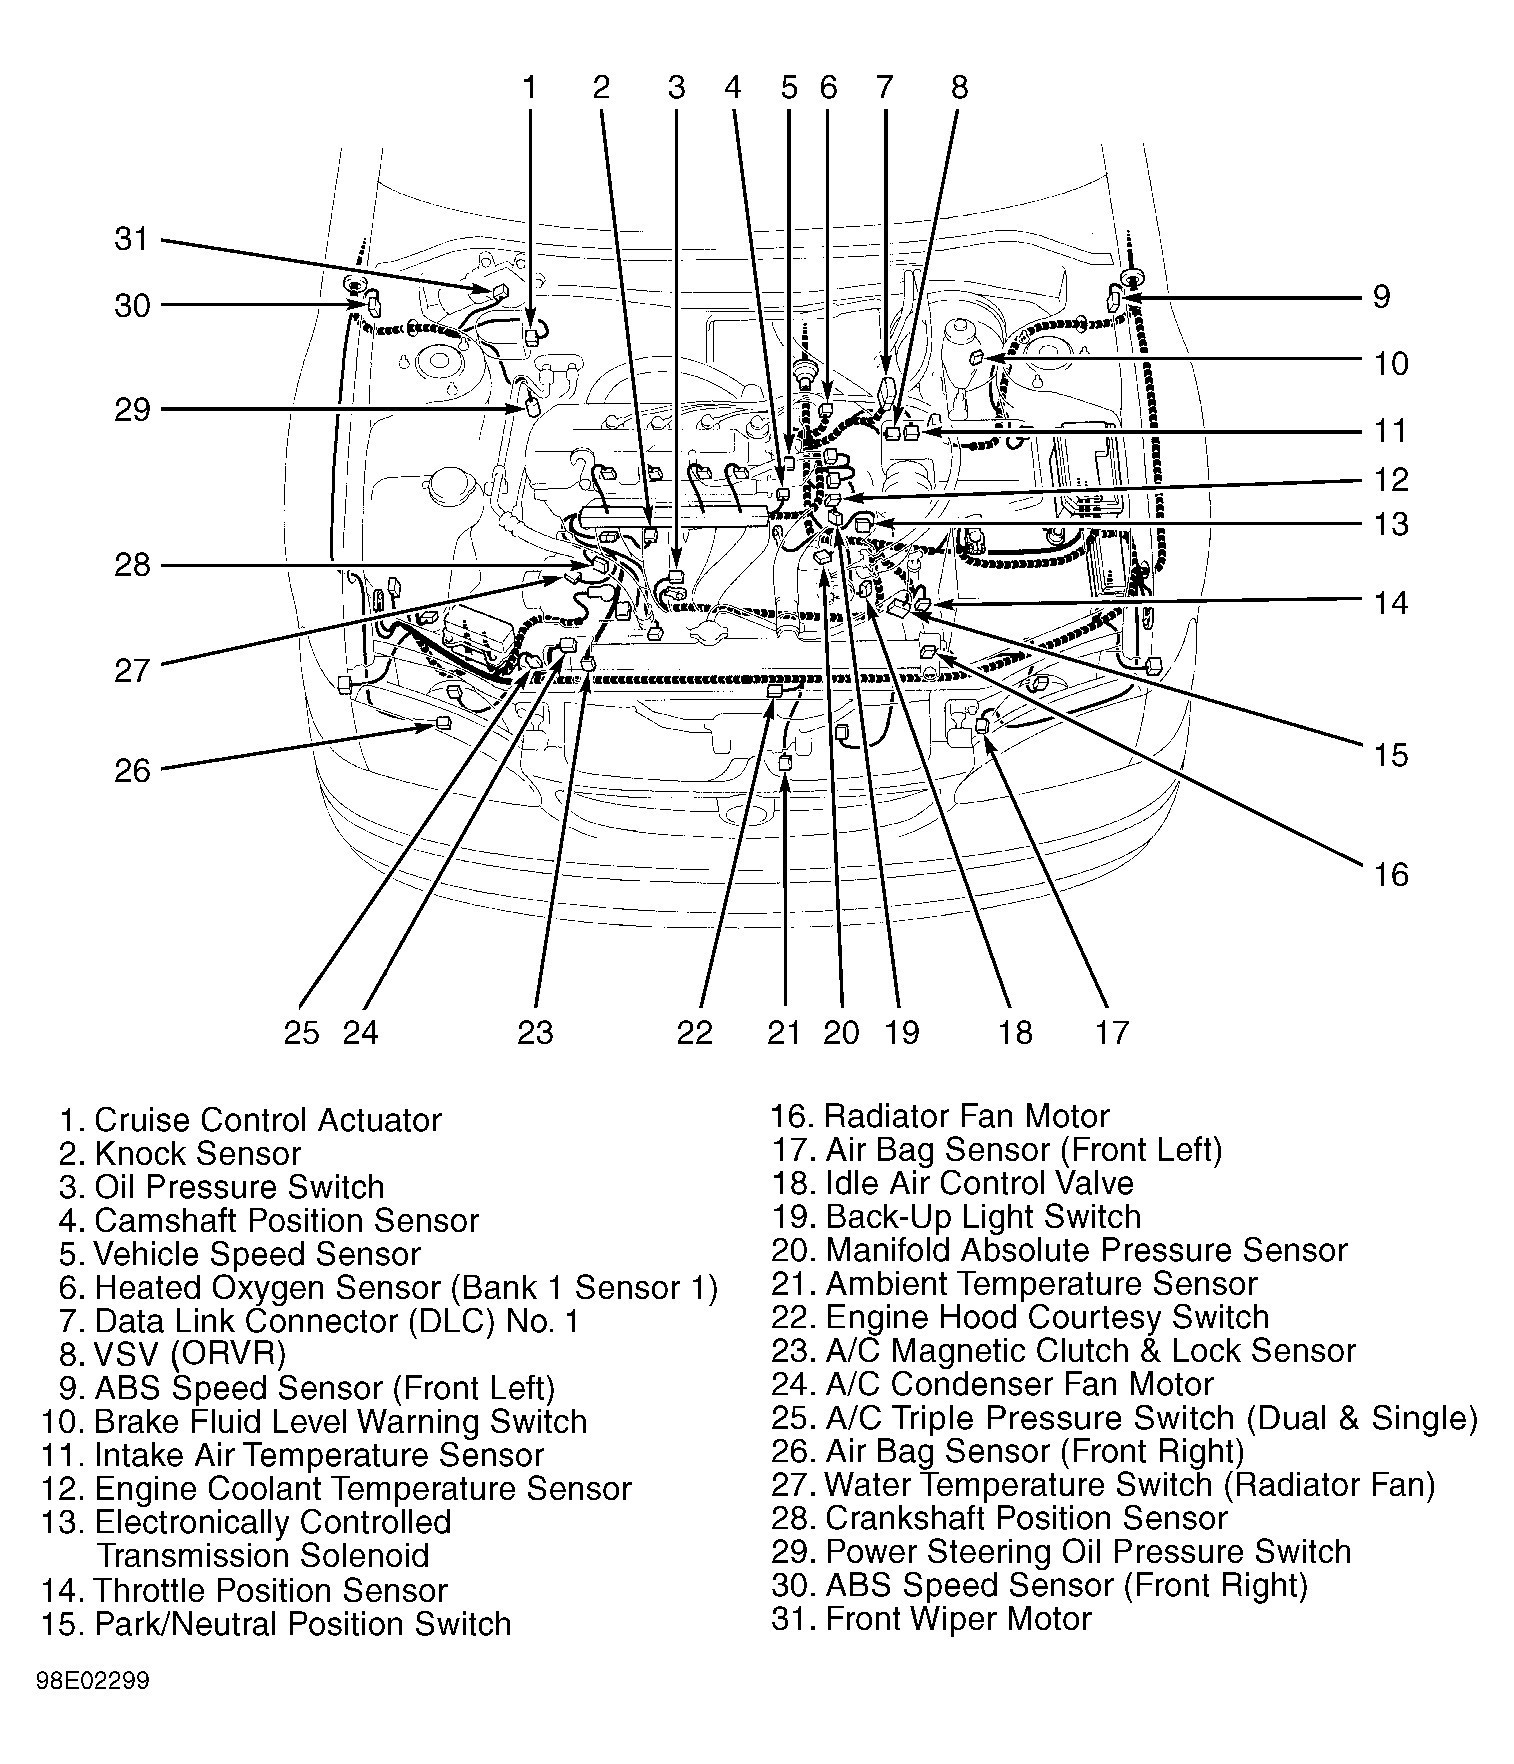 1995 toyota Camry Parts Diagram 1995 toyota Corolla Engine Diagram Heater Wiring Diagram Used Of 1995 toyota Camry Parts Diagram